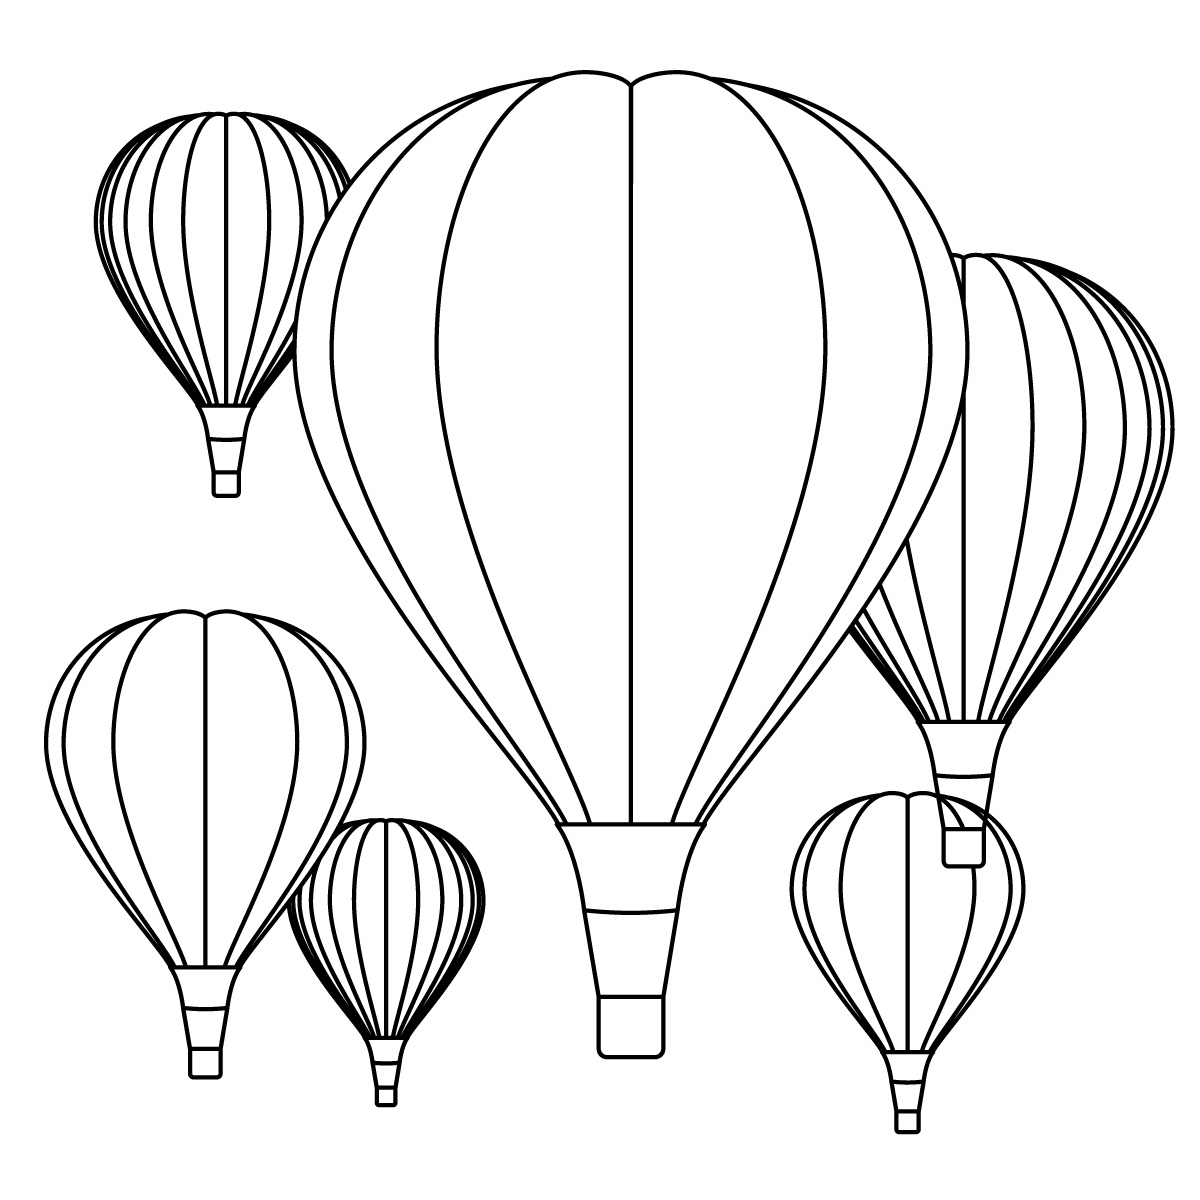 1200x1200 Sheets Hot Air Balloon Outline 87 On Coloring Online With Hot Air